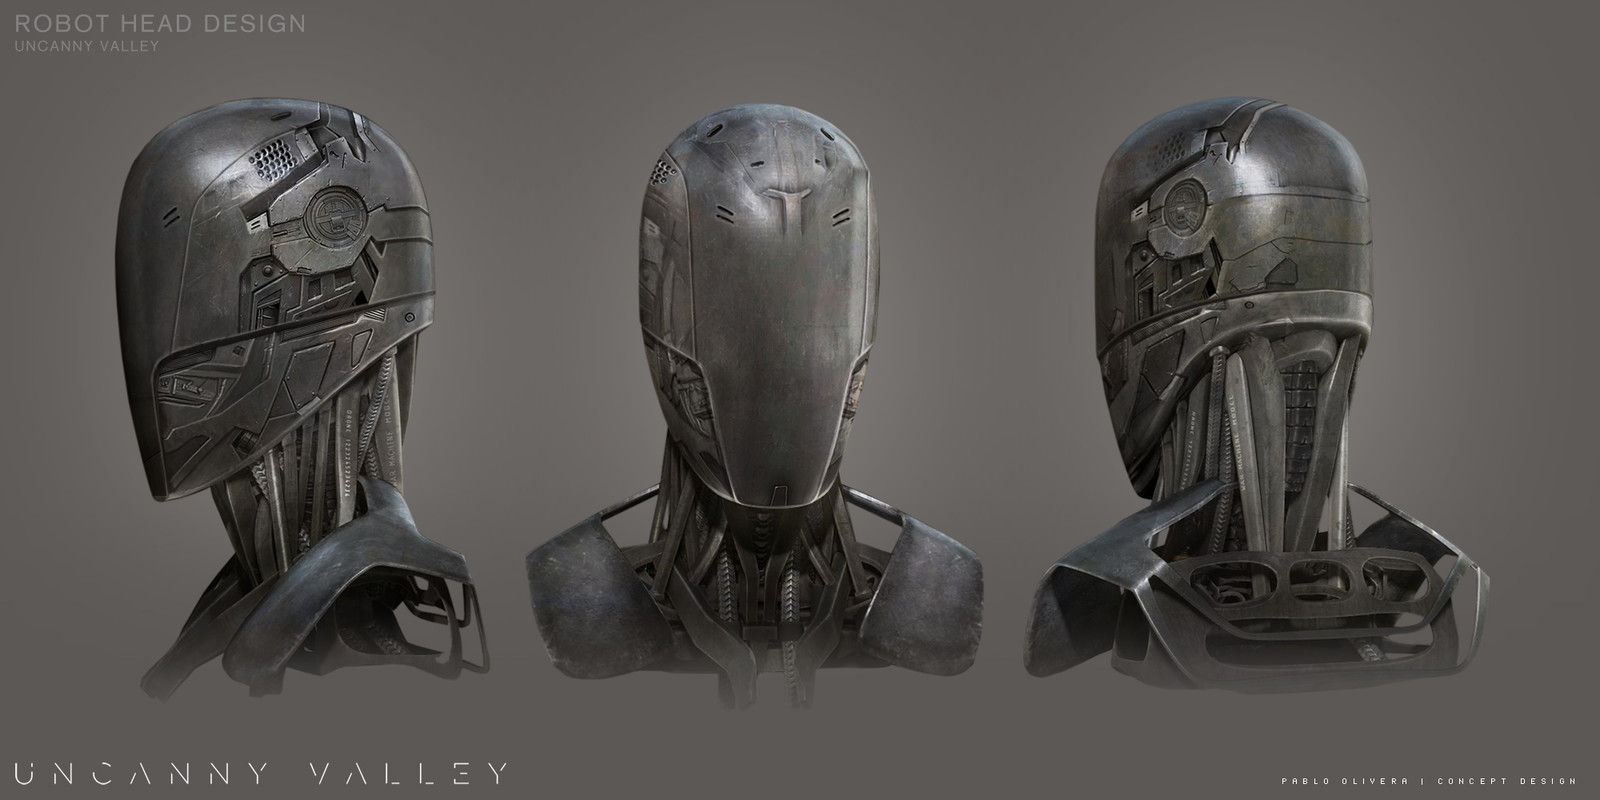 Robot Design for Uncanny Valley ( Sci-Fi short film )